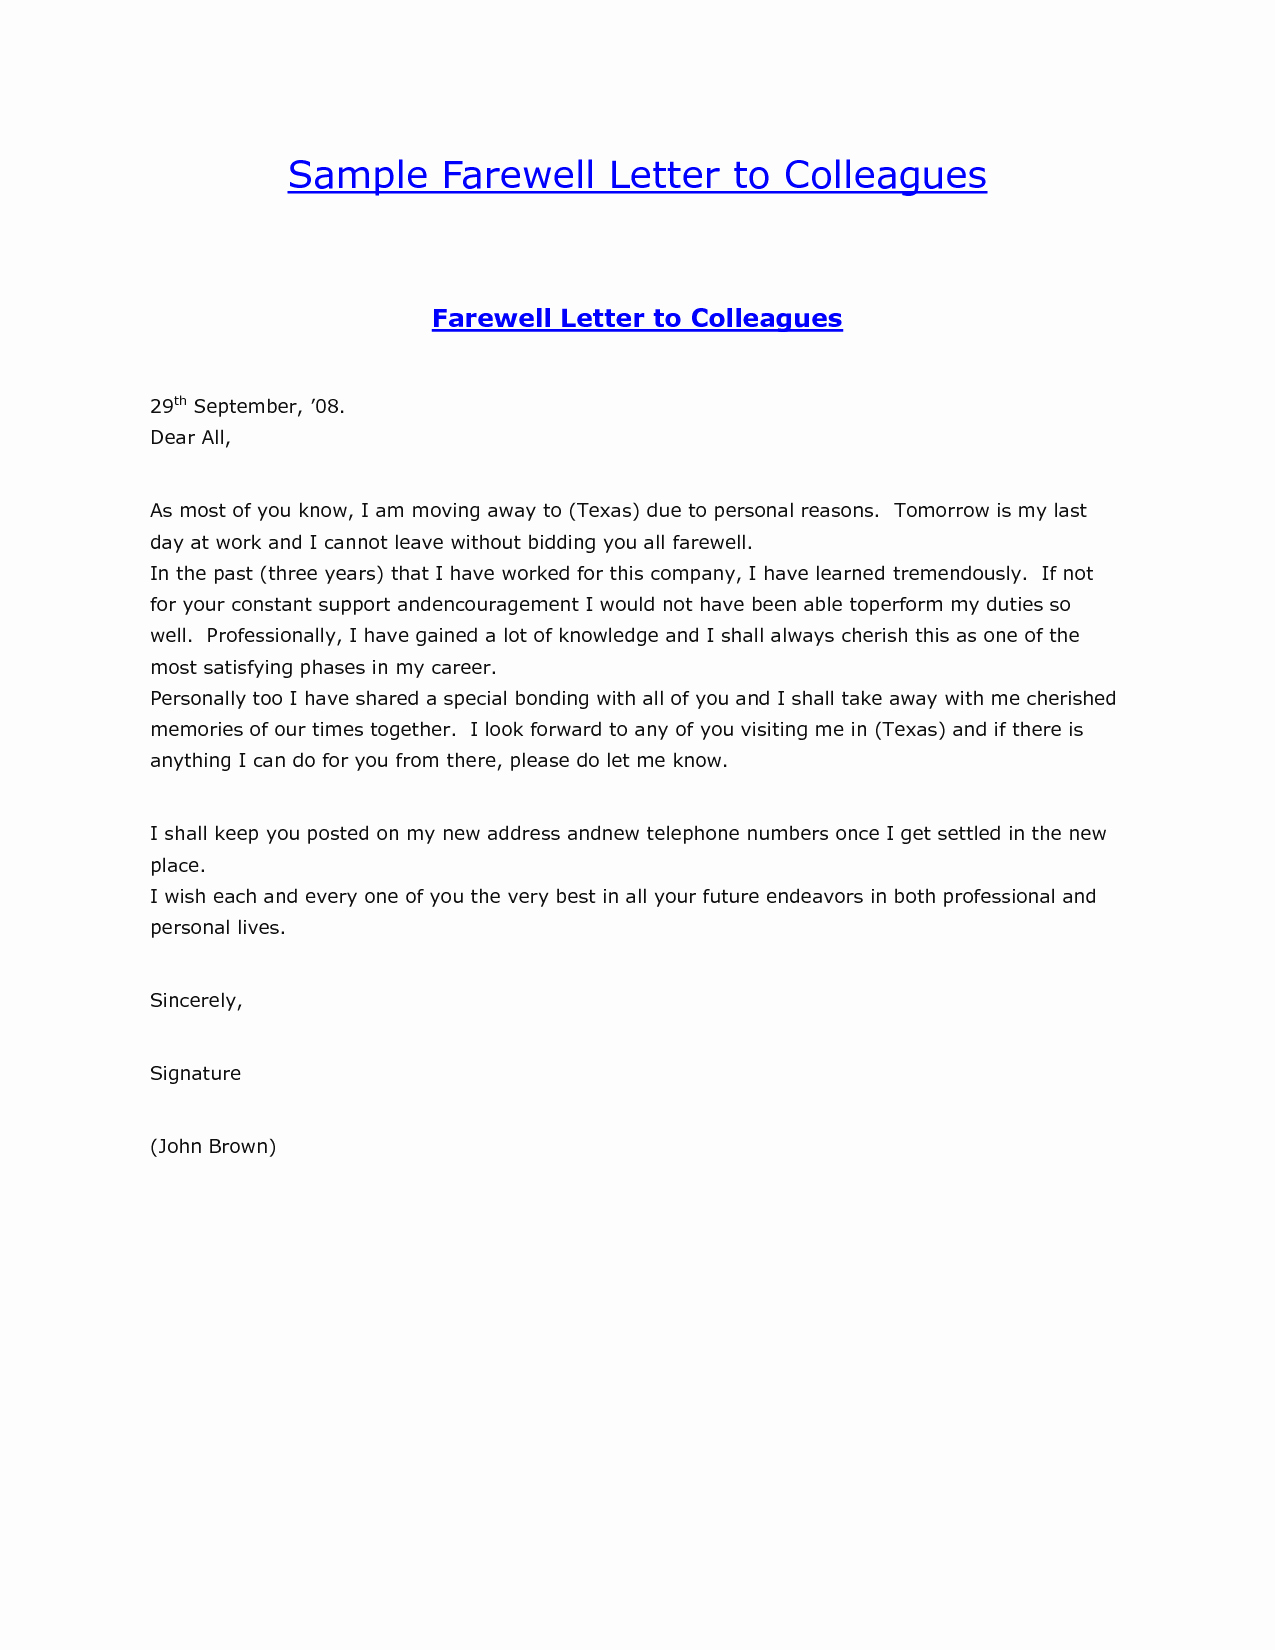 Goodbye Note to Coworkers Luxury Sample Farewell Letter to Colleaguesgoodbye Letter formal